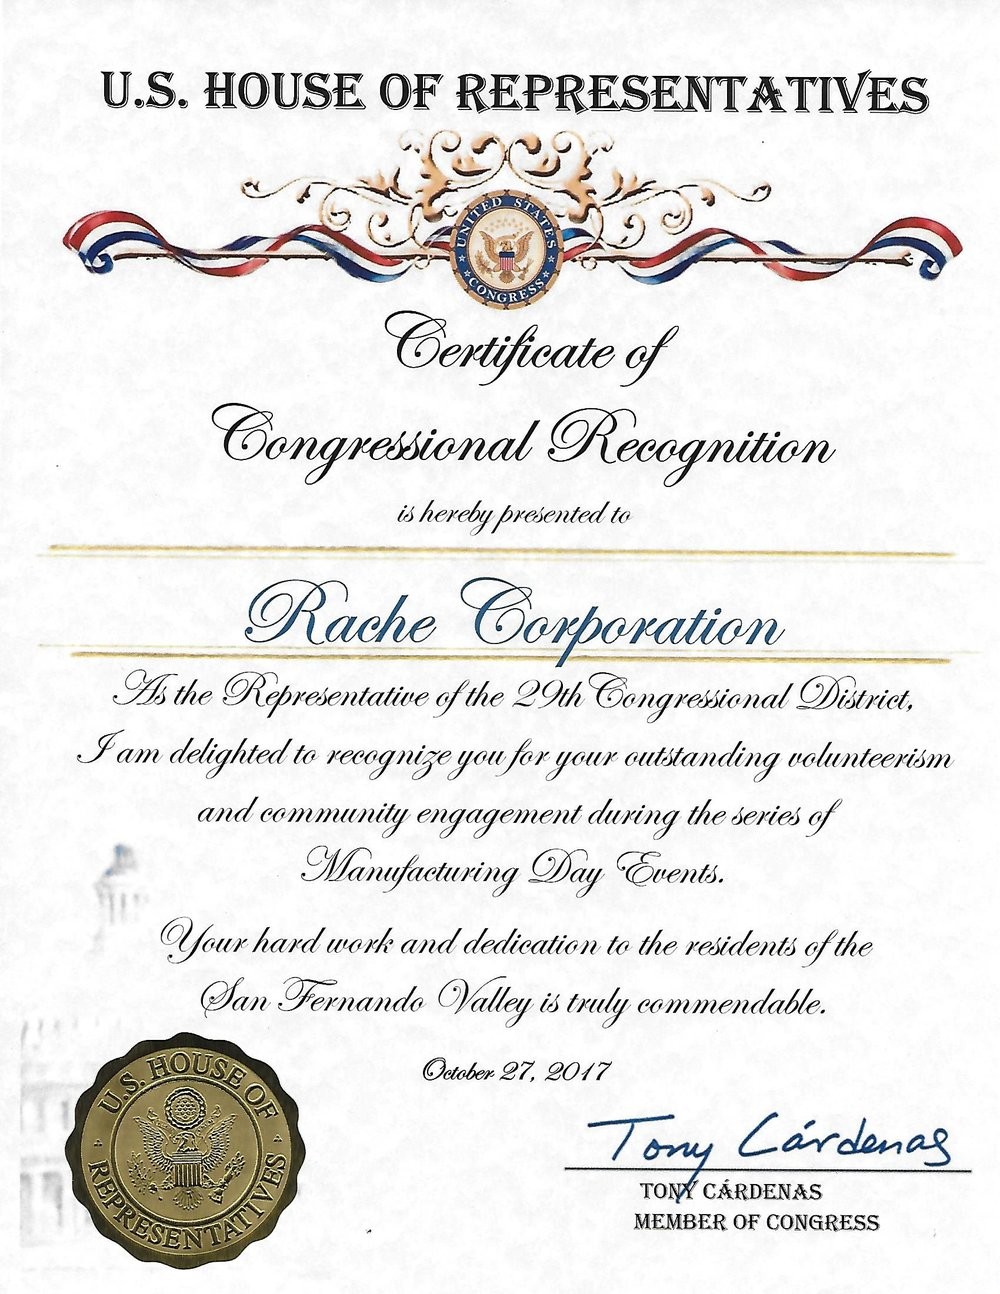 U.S. House of Representatives – 29th Congressional District – Recognition for outstanding volunteerism       and community engagement during the series of Manufacturing Day Events